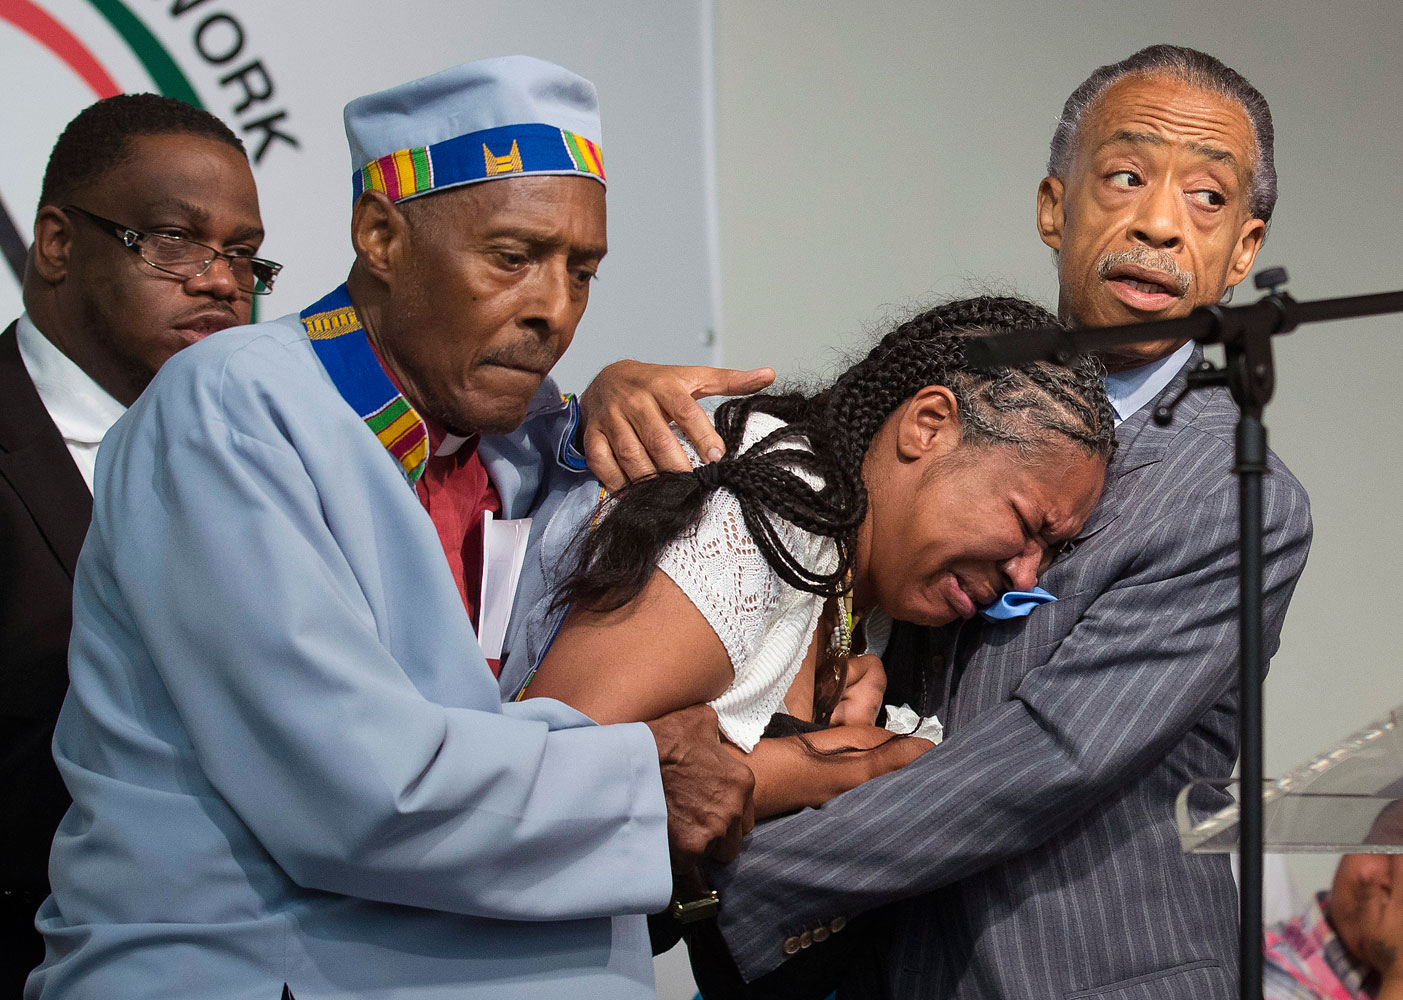 Rev. Herbert Daughtry and Rev. Al Sharpton hold Esaw Garner, wife of Eric Garner, during a rally at the National Action Network headquarters for Eric Garner, July 19, 2014, in New York City.